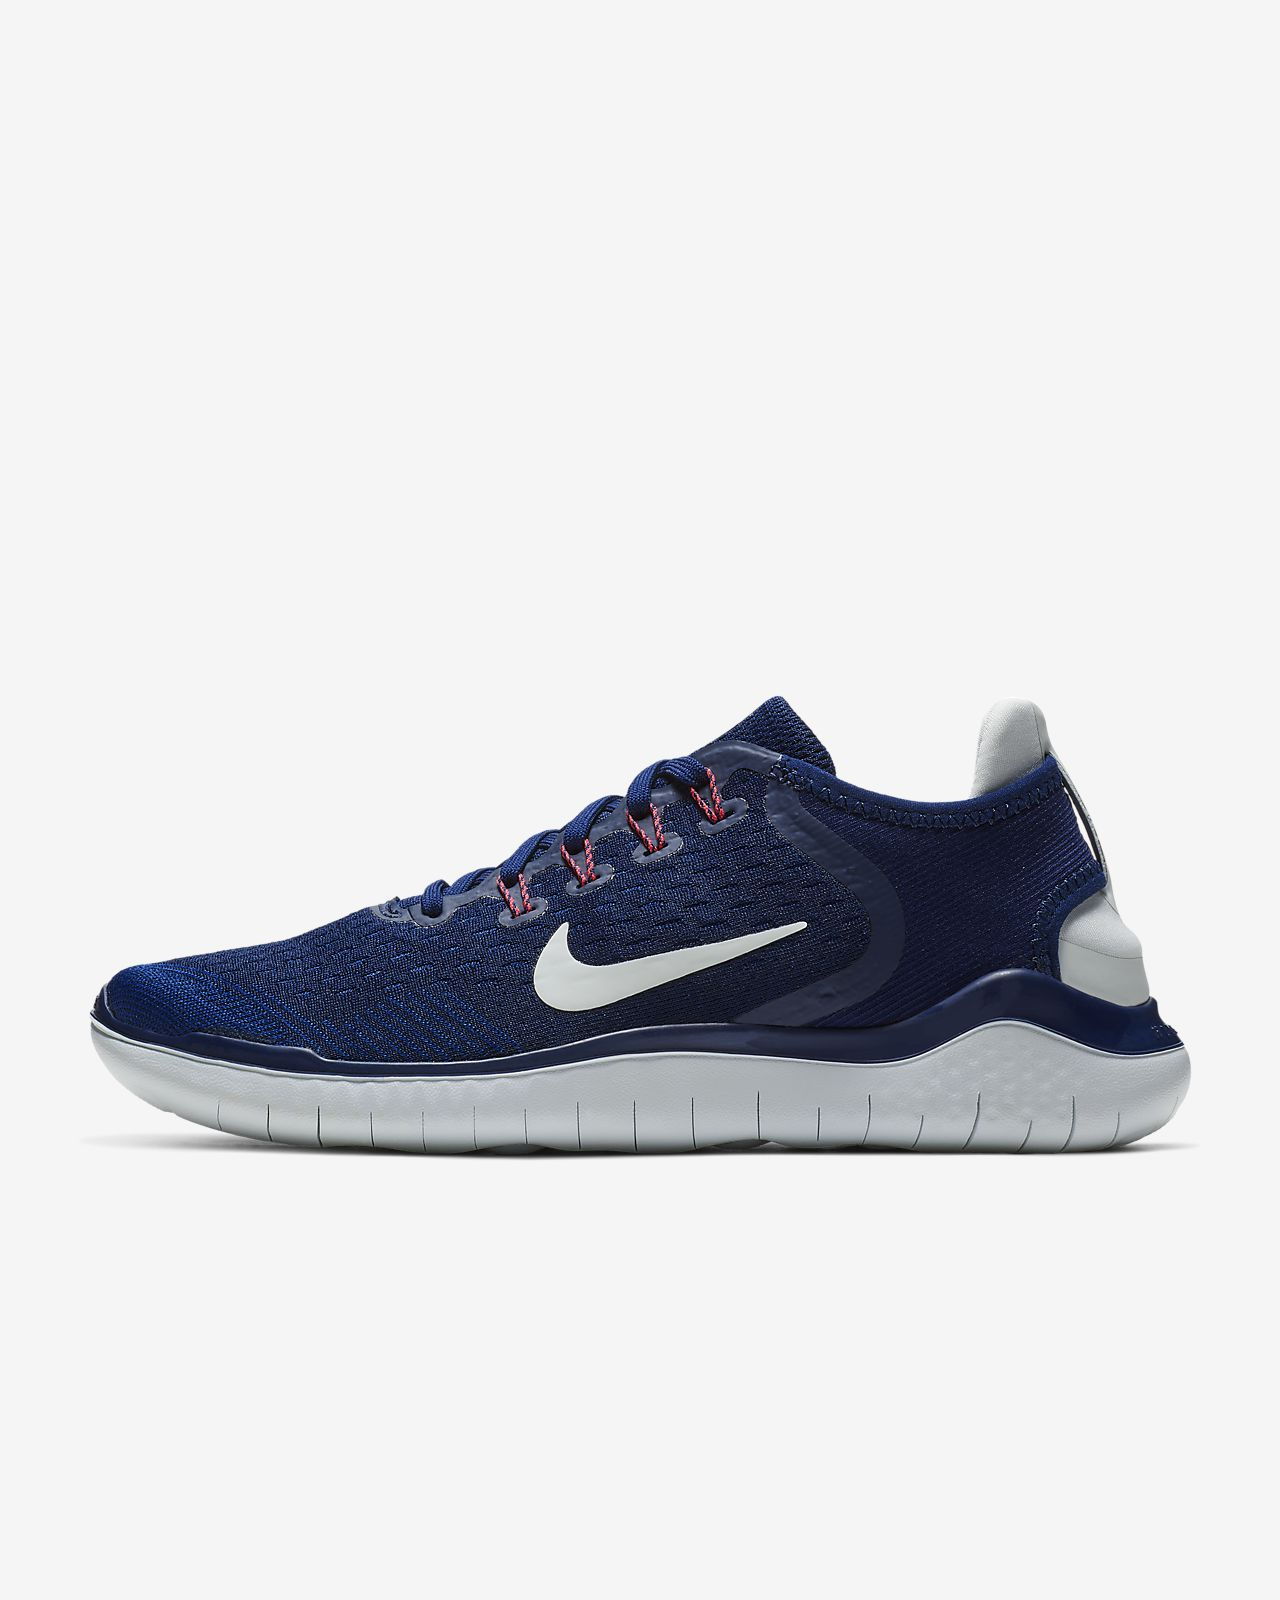 best loved 06fff 72833 ... Nike Free RN 2018 Women s Running Shoe